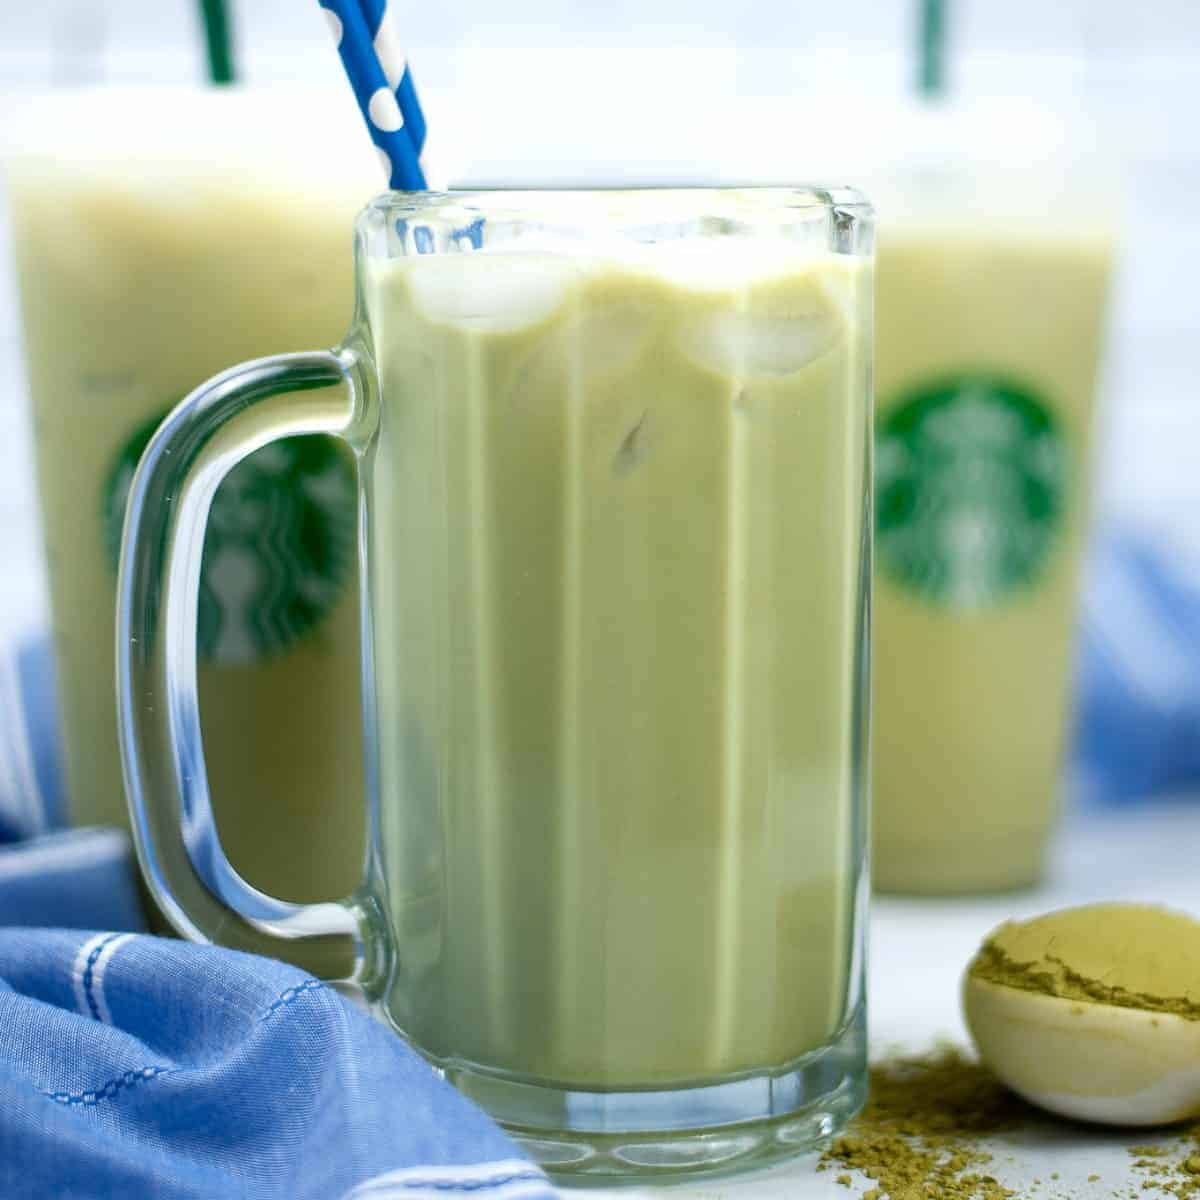 Tall glass mug filled with iced green tea latte,